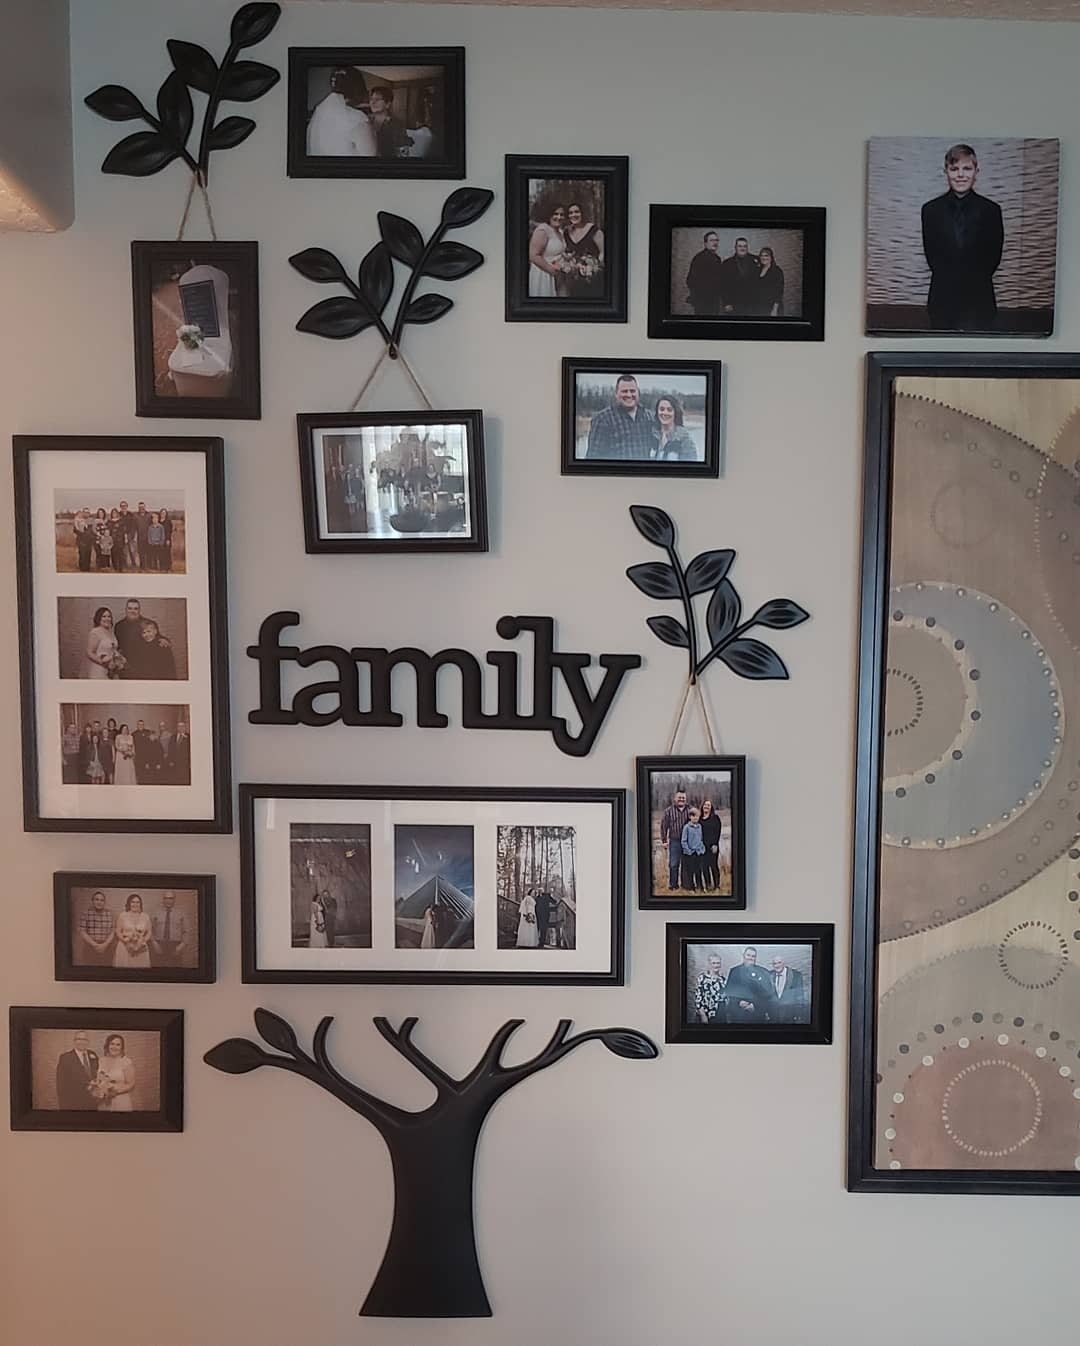 Family Wall Collage Ideas -christaleppa_barembruch